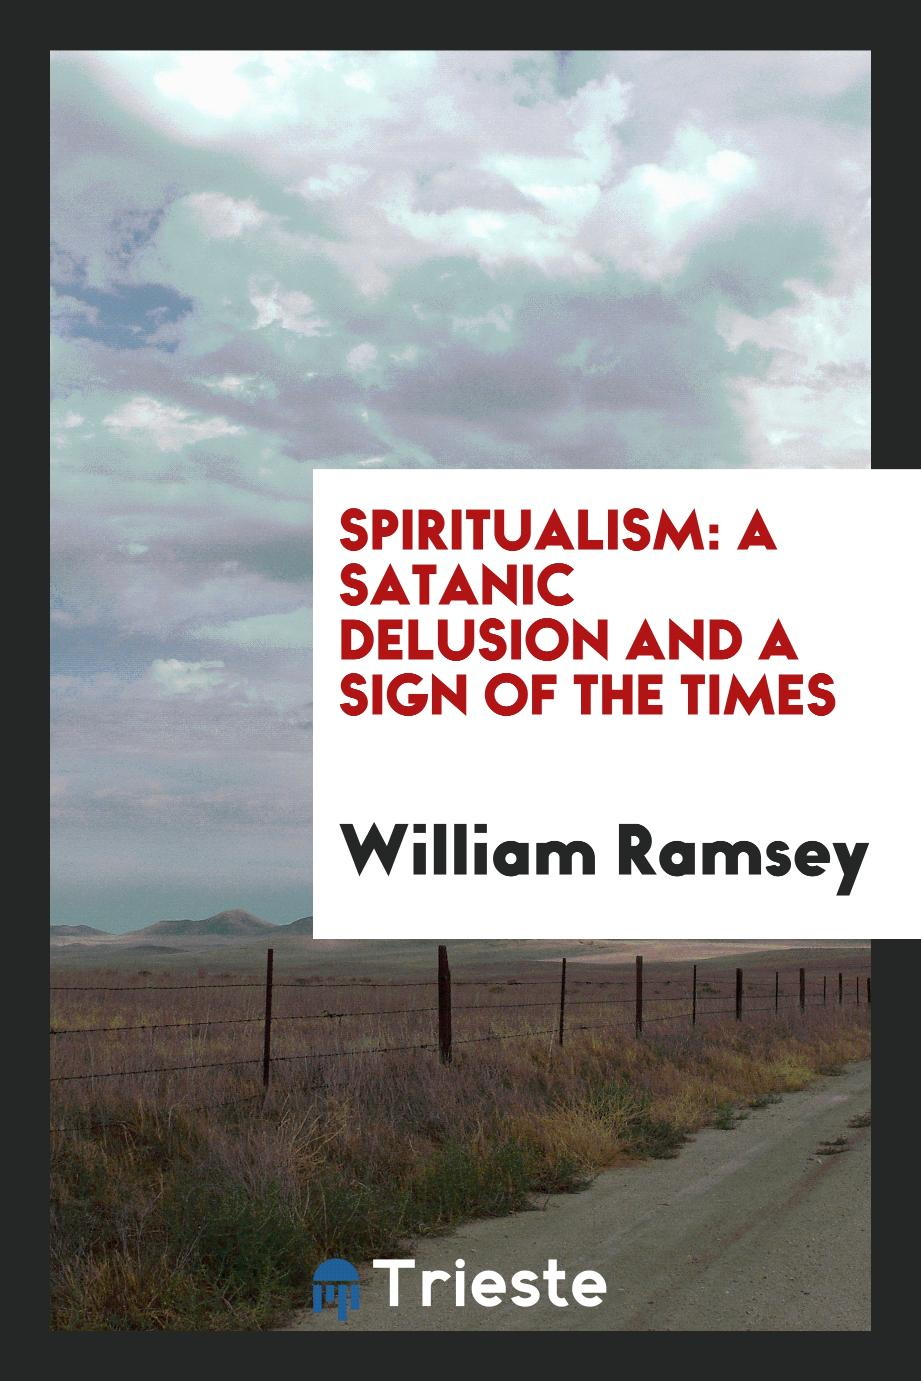 Spiritualism: A Satanic Delusion and a Sign of the Times